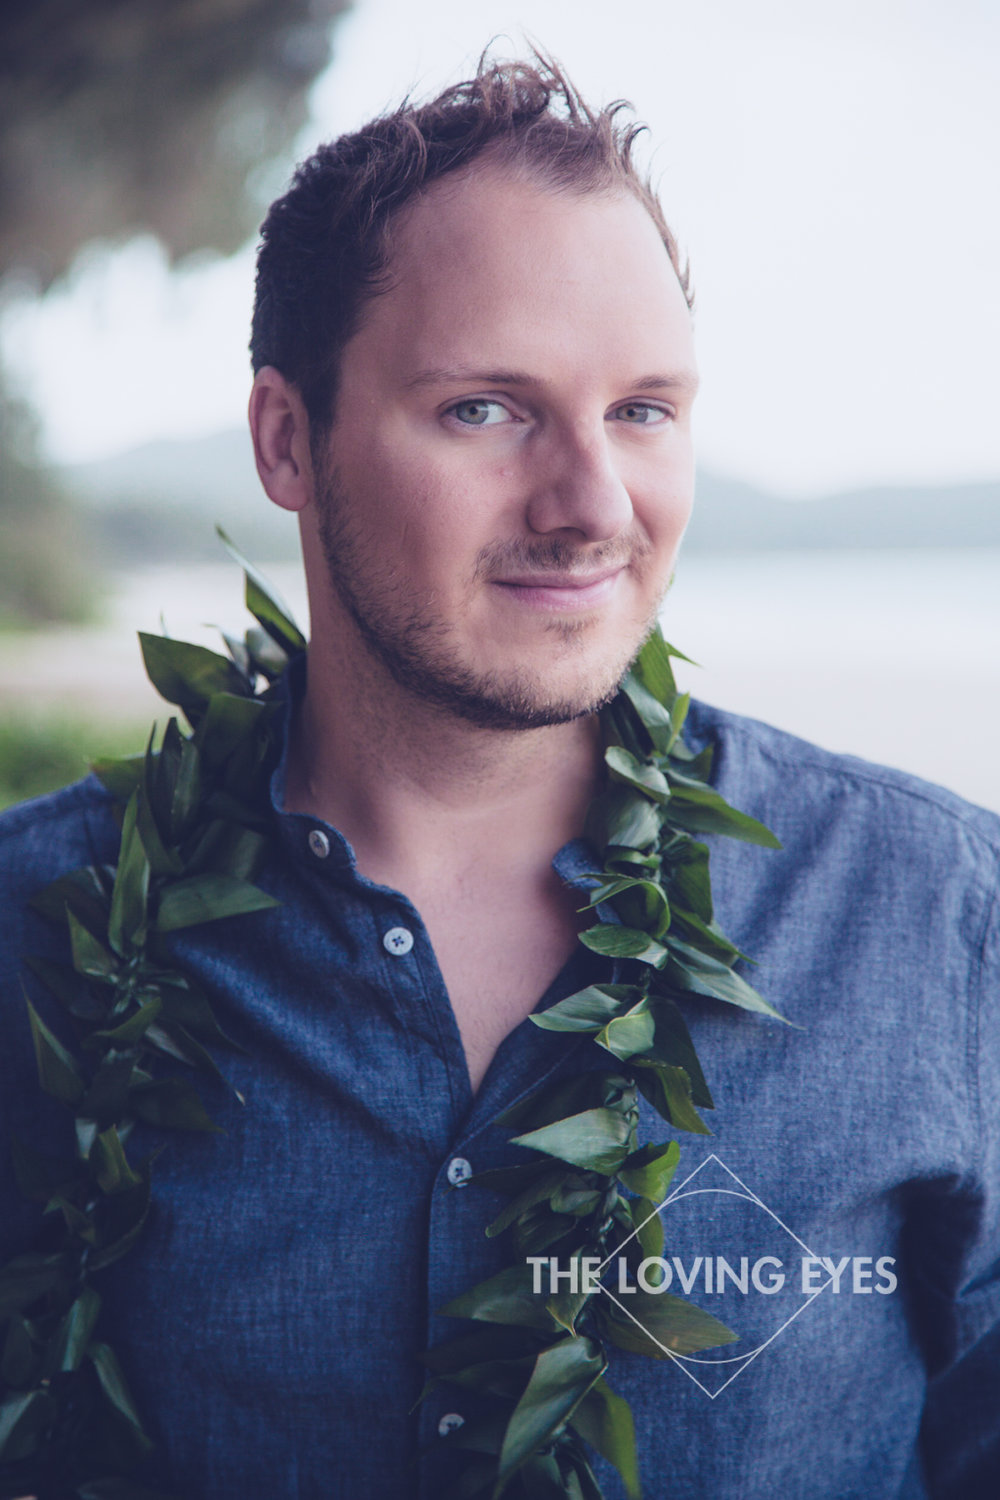 Casual elopement on the beach in Hawaii